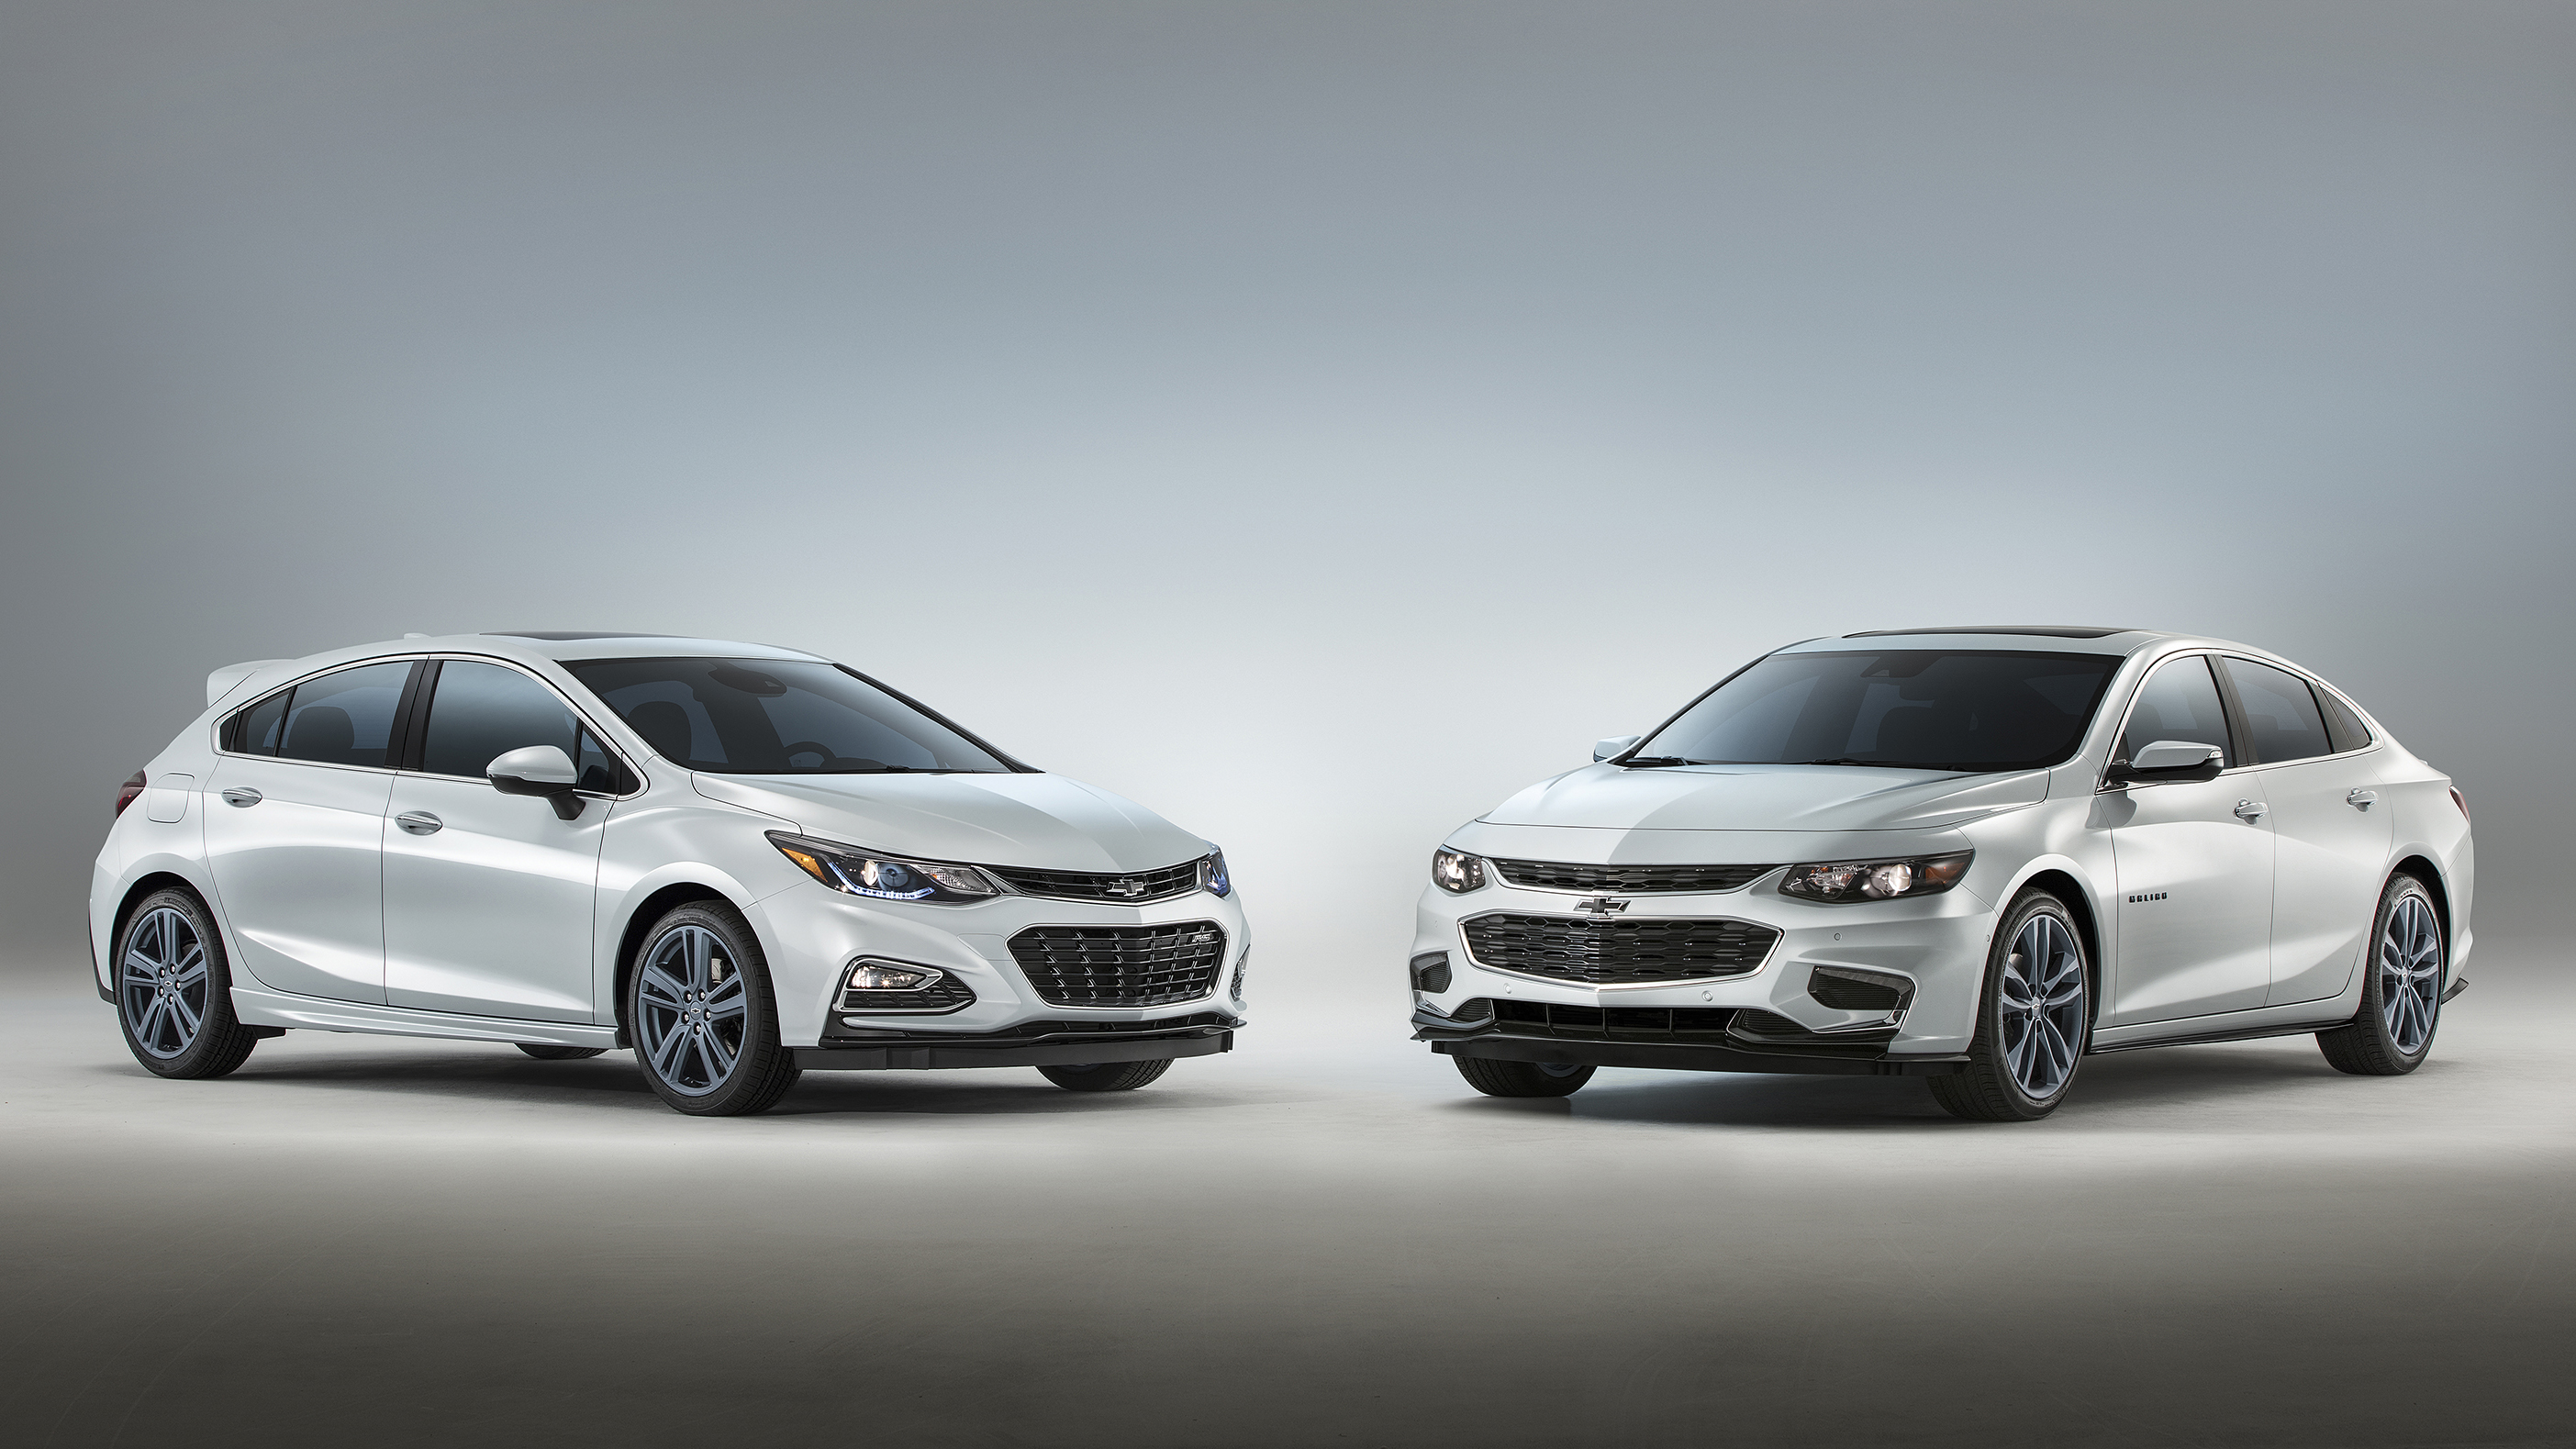 Chevy goes subtle with Blue Line concepts for SEMA